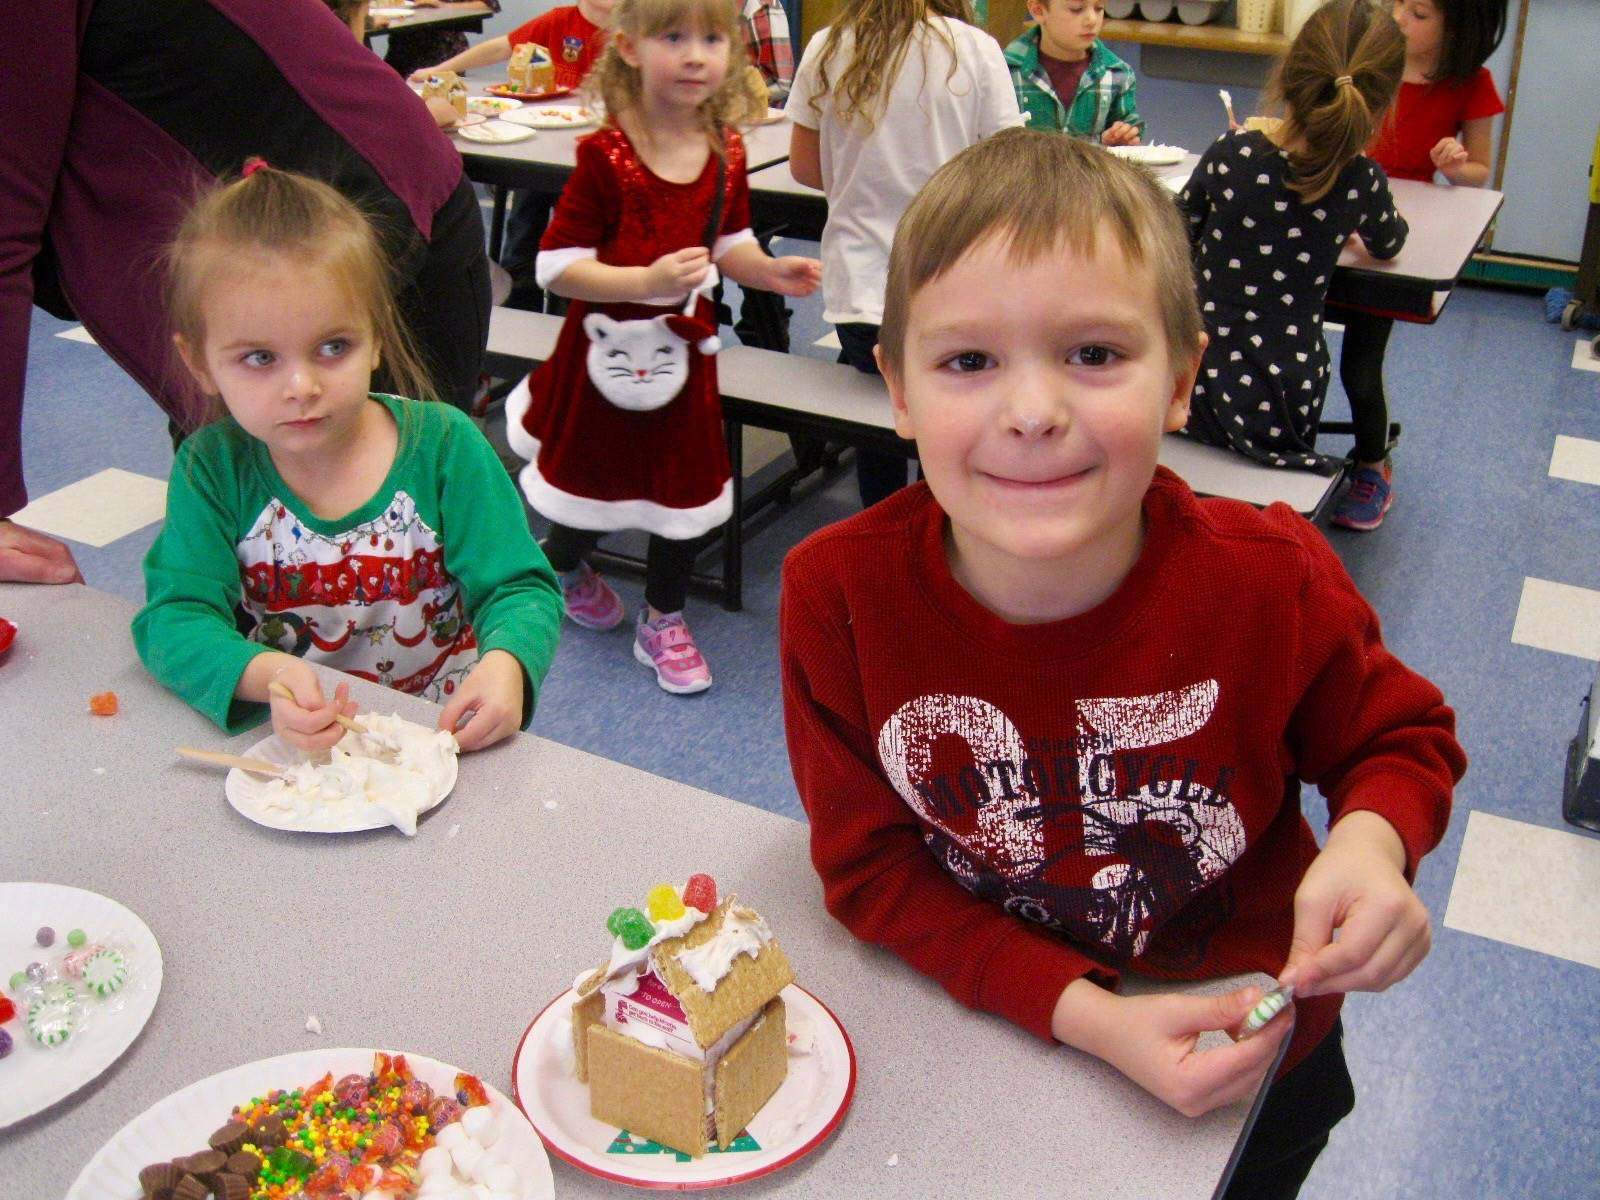 2 students with ginger bread houses.